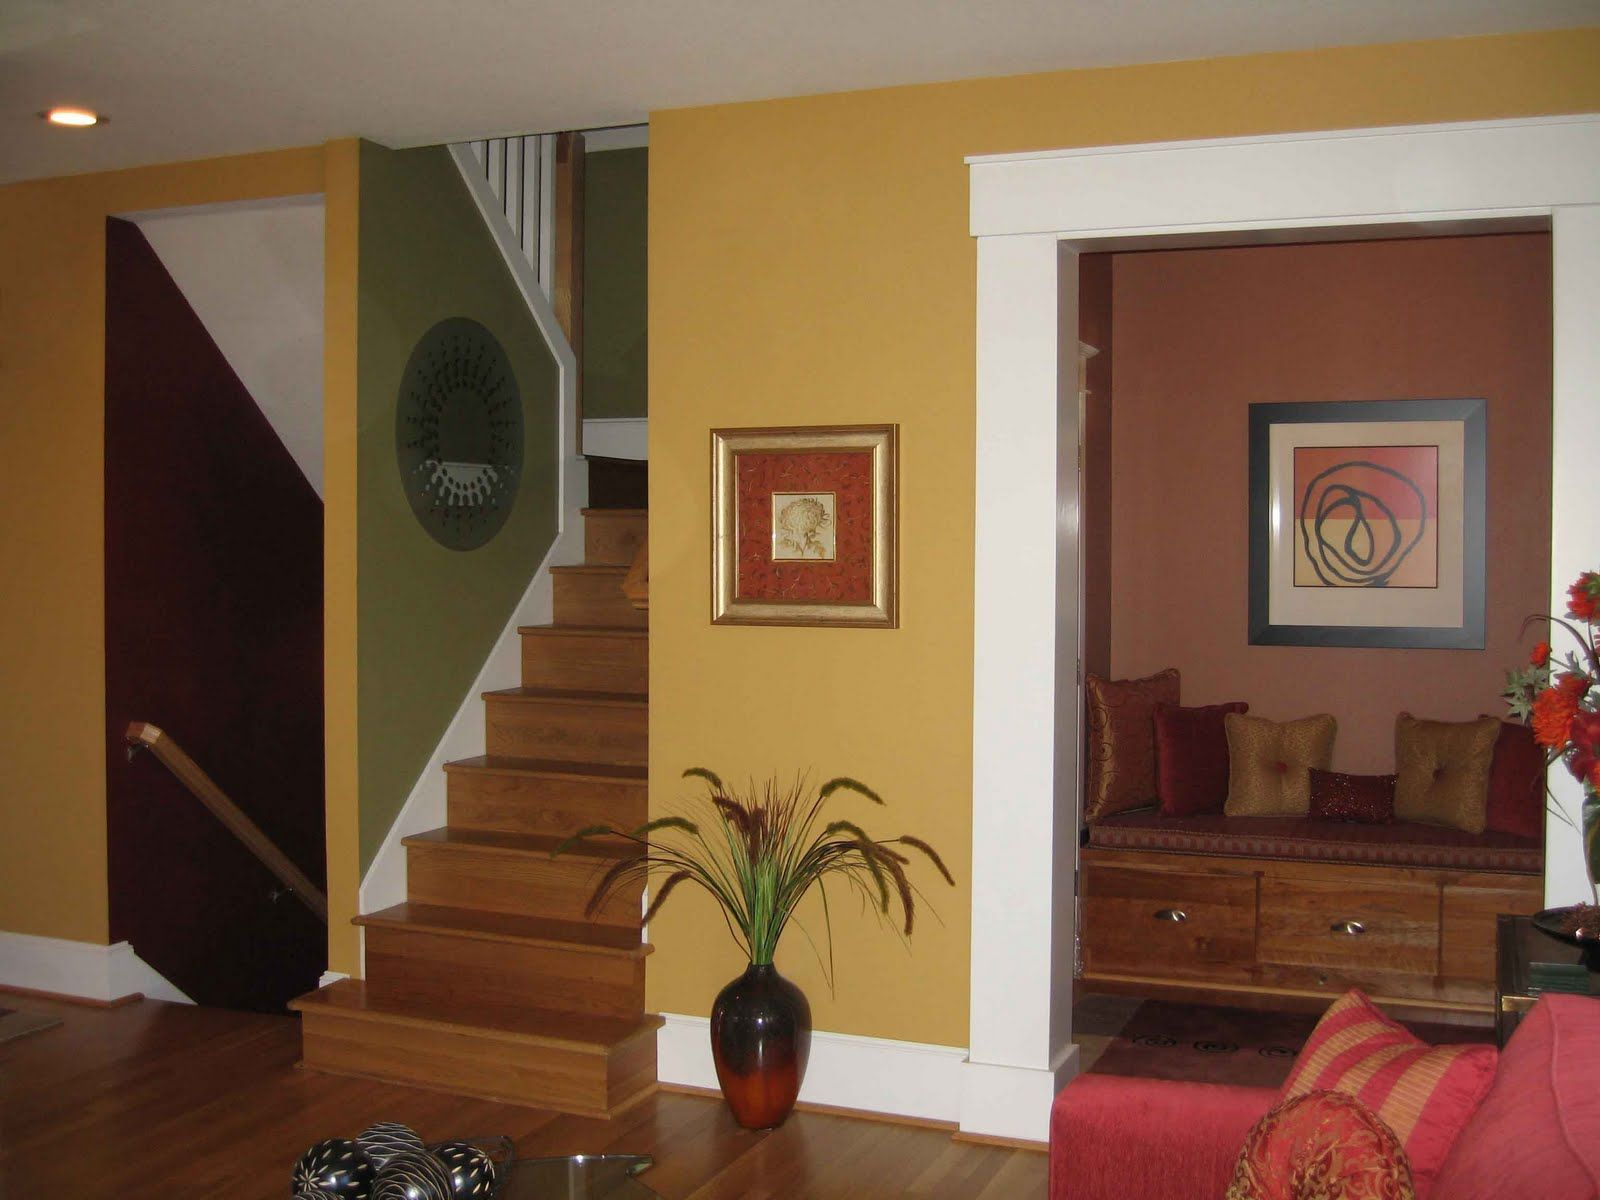 Popular interior paint colors - Popular House Interior Colors Interior Spaces Interior Paint Color Specialist In Portland Oregon